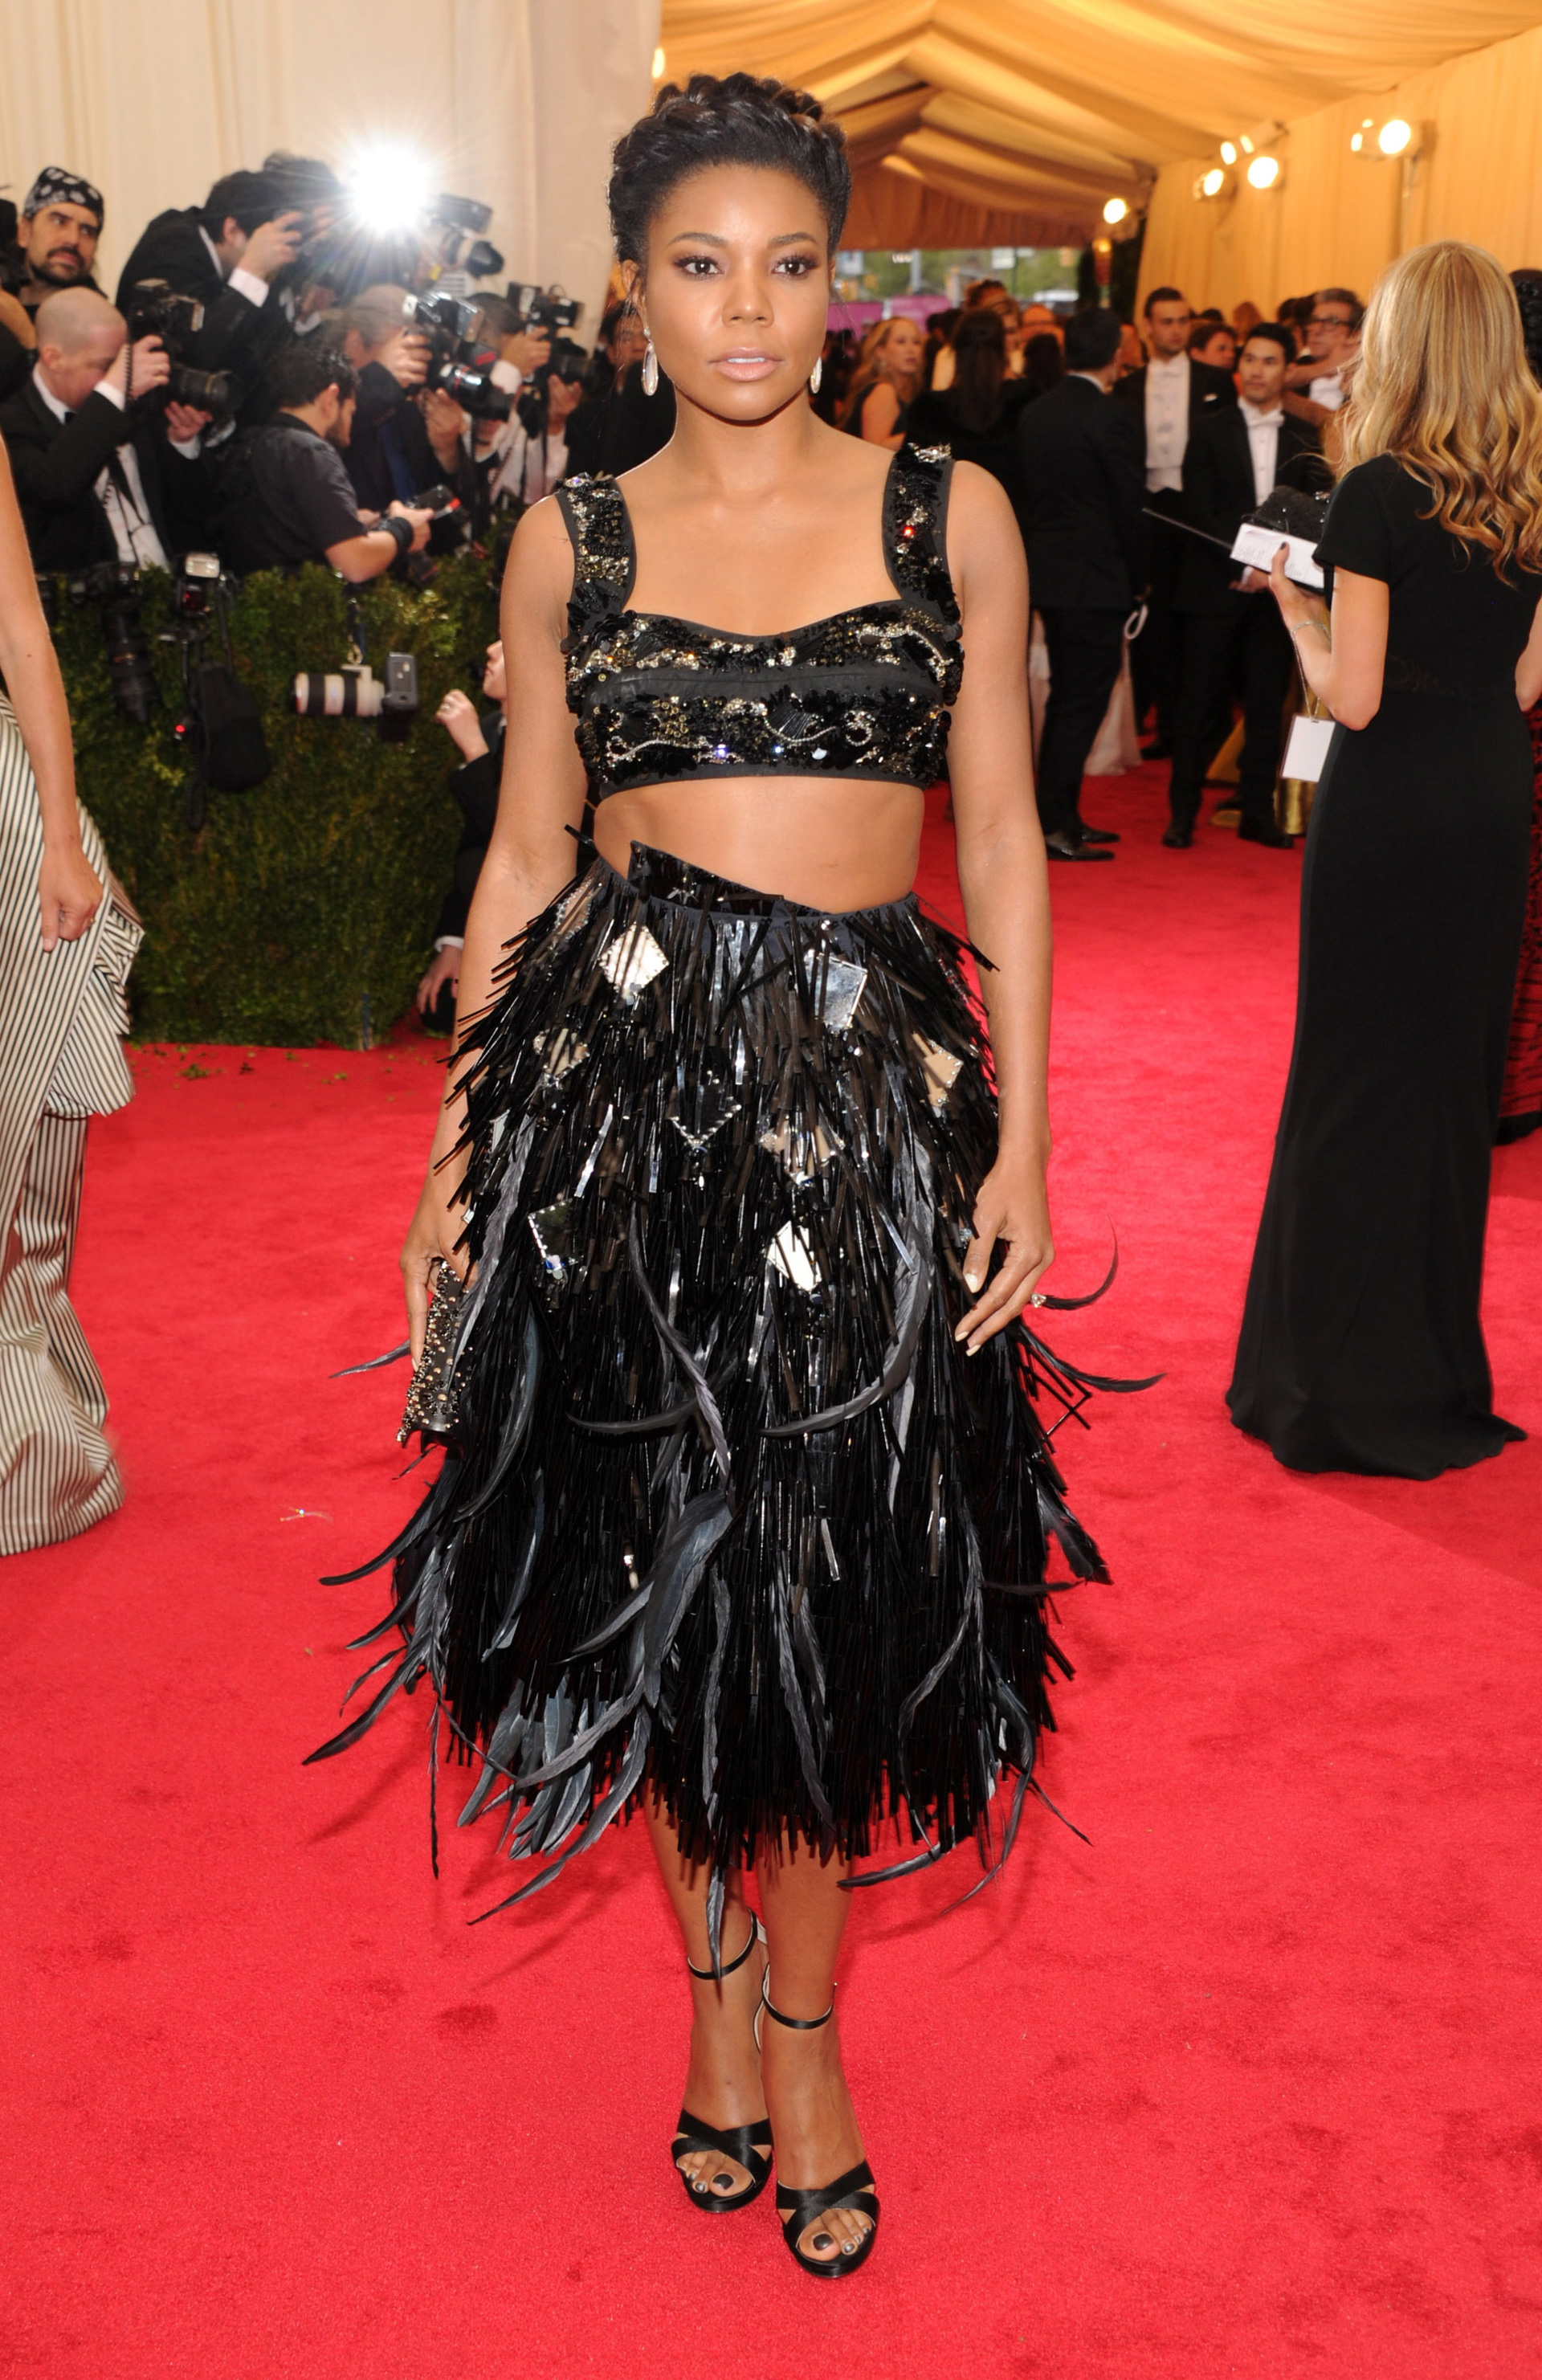 Gabrielle Union at the 2014 Met Gala